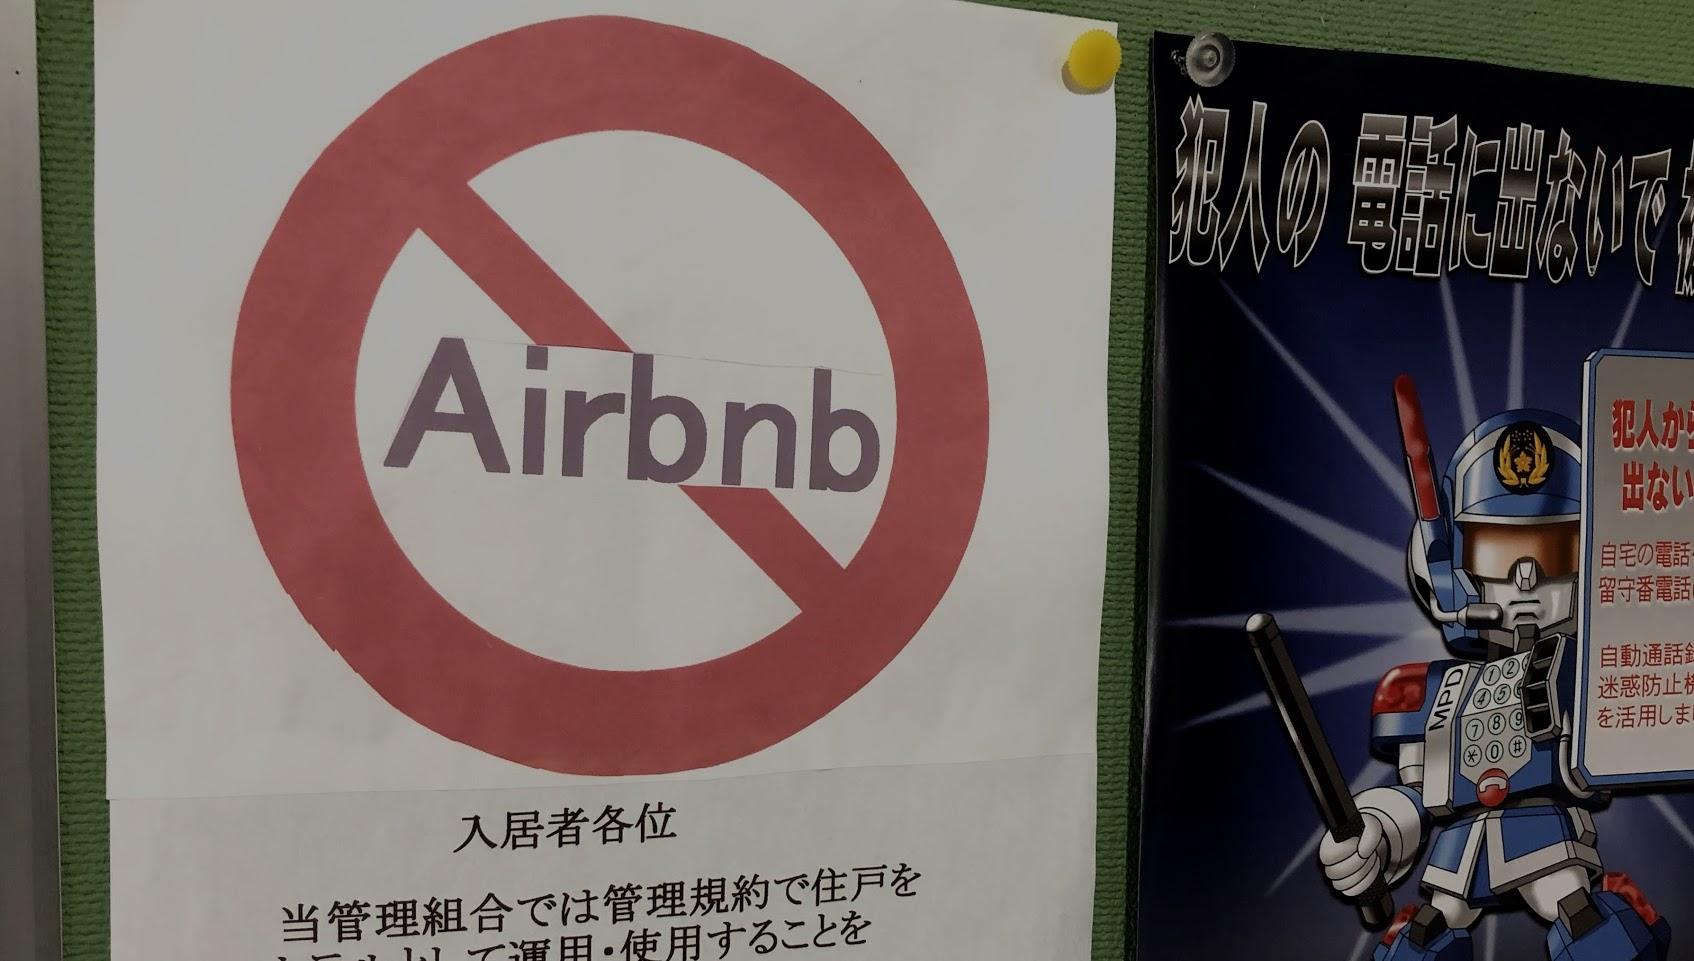 A sign banning AirBnBs in a Tokyo apartment building